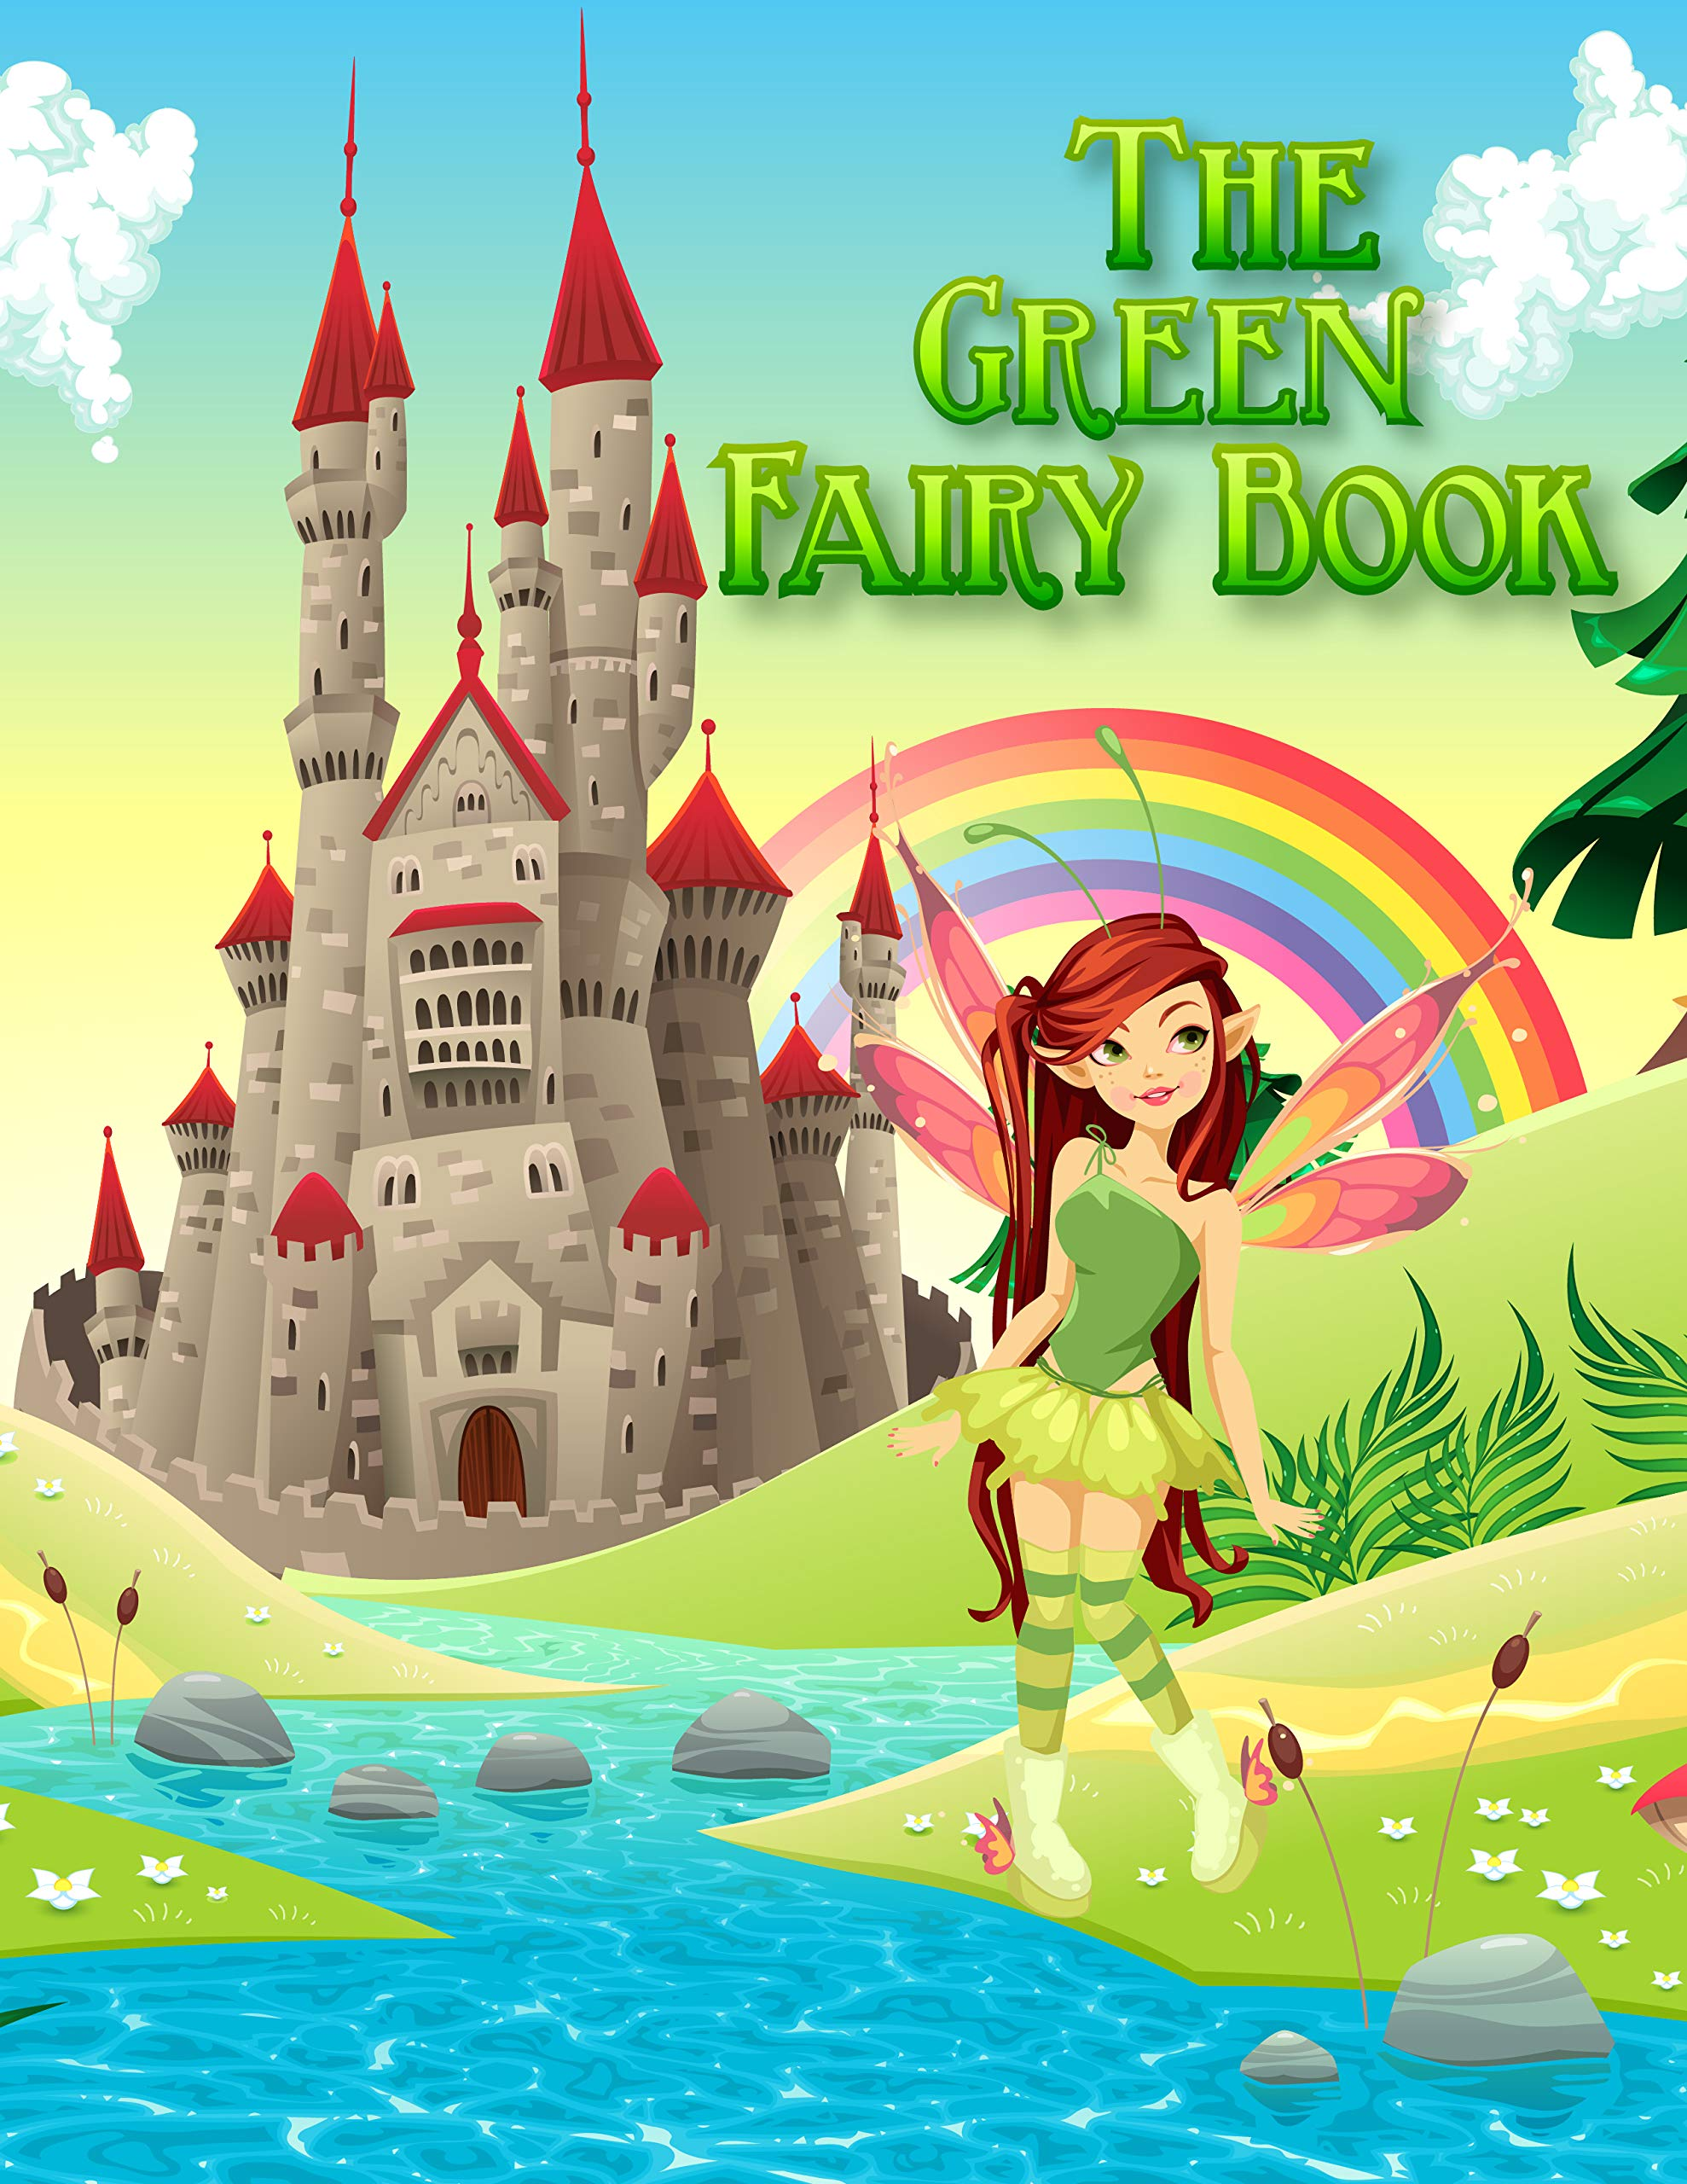 The Green Fairy Book: Classic fairy tale | Bedtime stories for kids | English cartoon Story